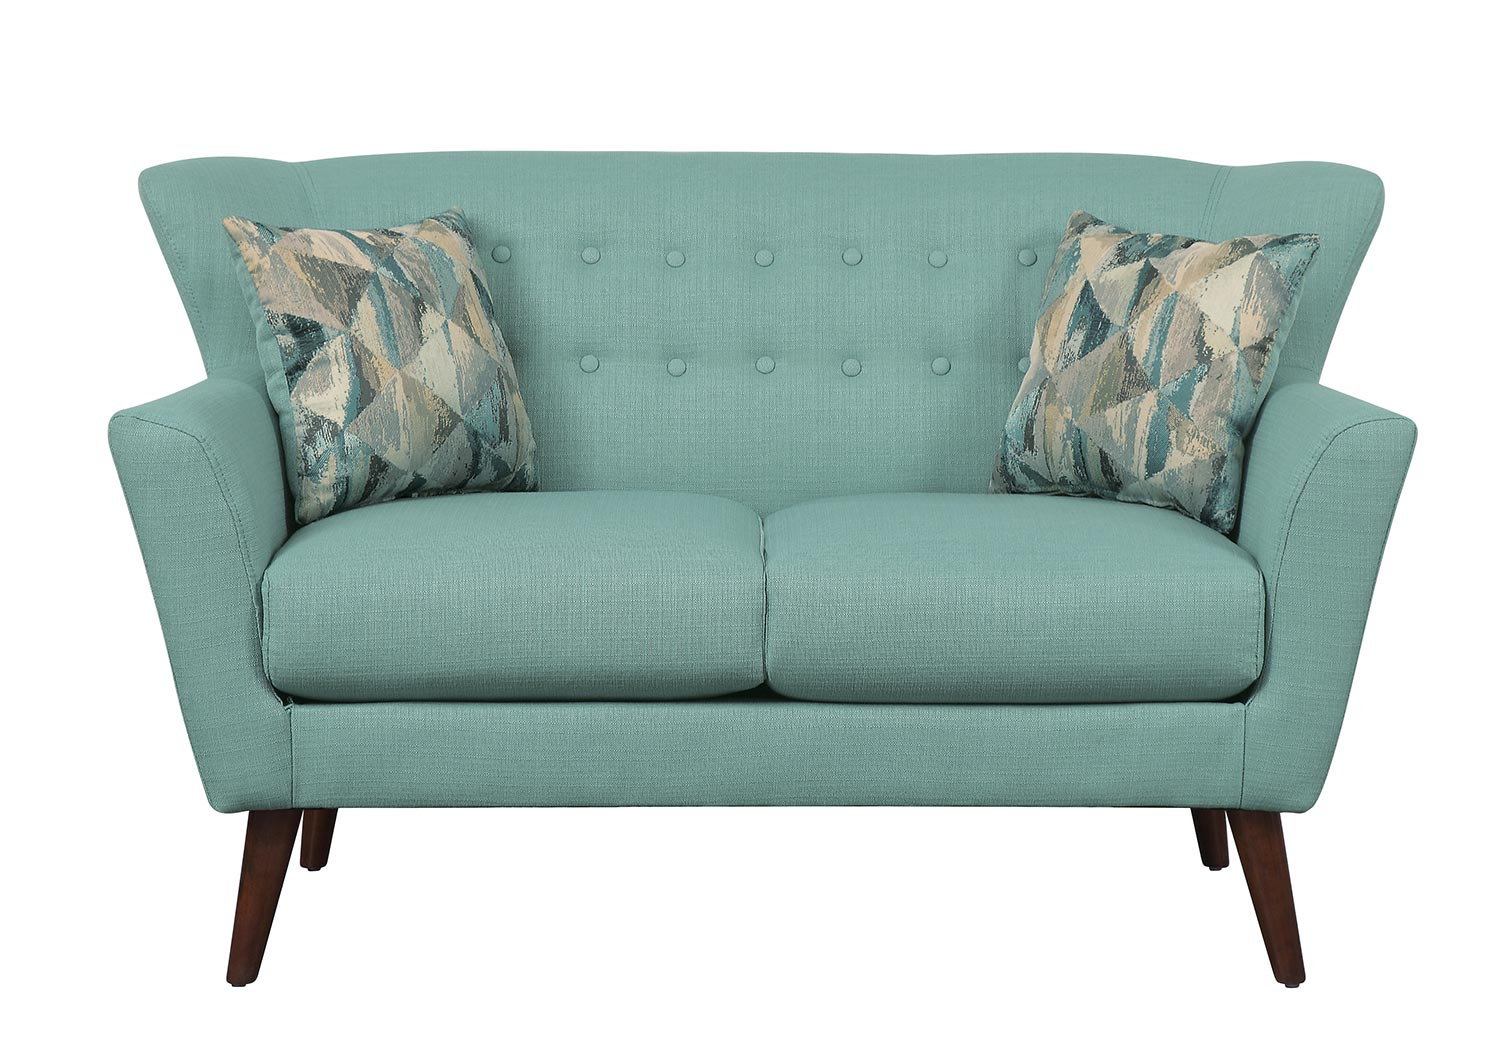 Homelegance Maja Love Seat - Teal